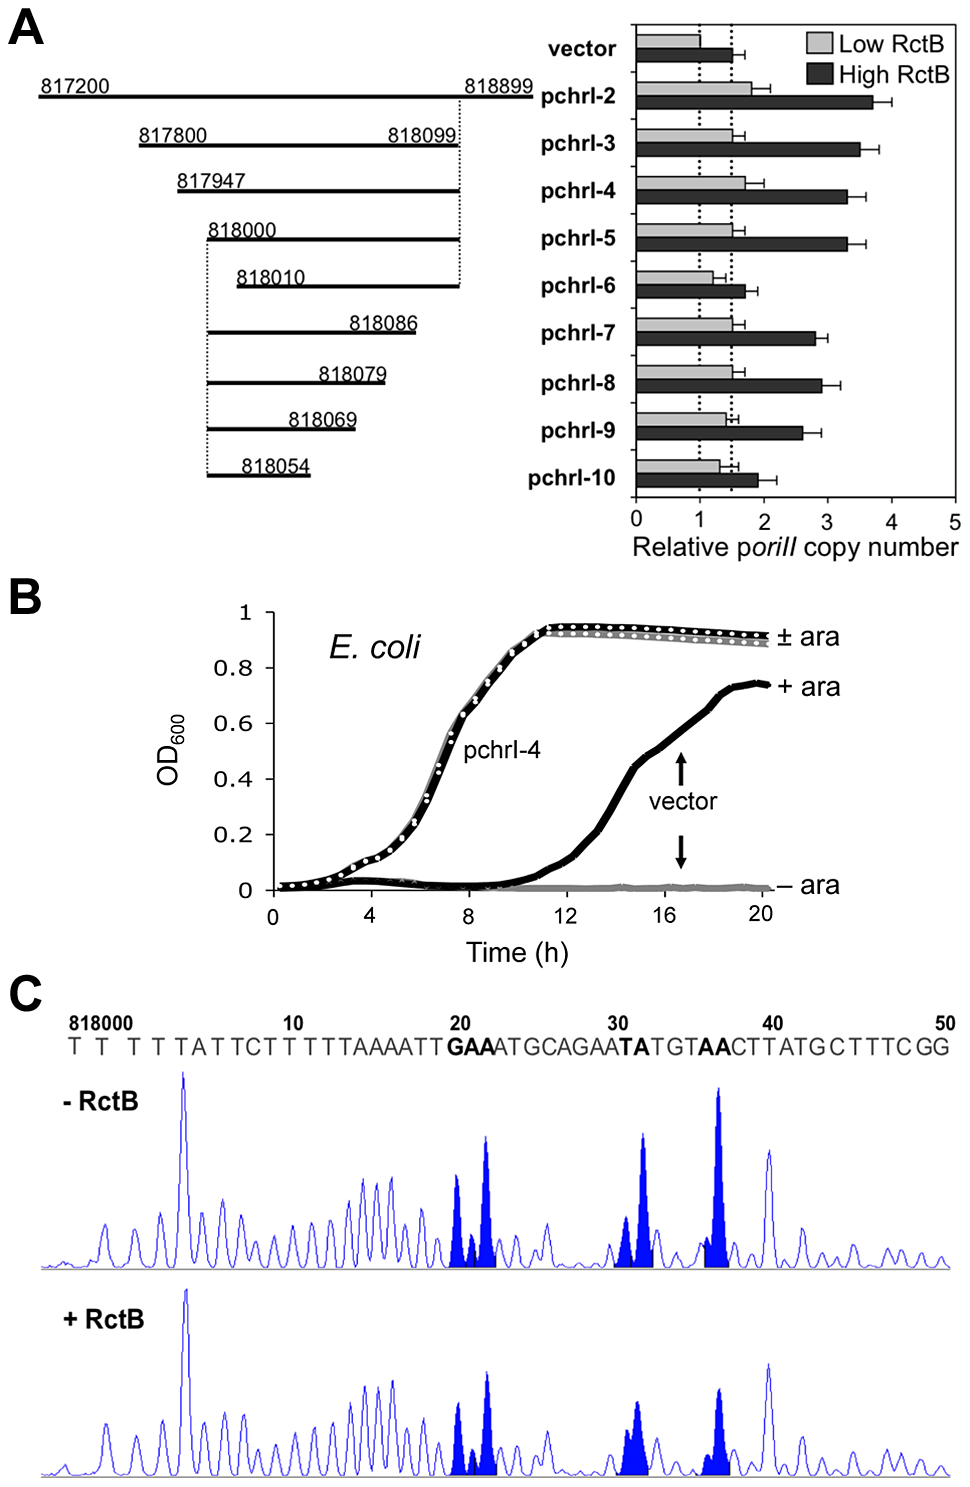 The newly identified chrI site enhances mini-chrII replication, improves cell growth and binds purified RctB.